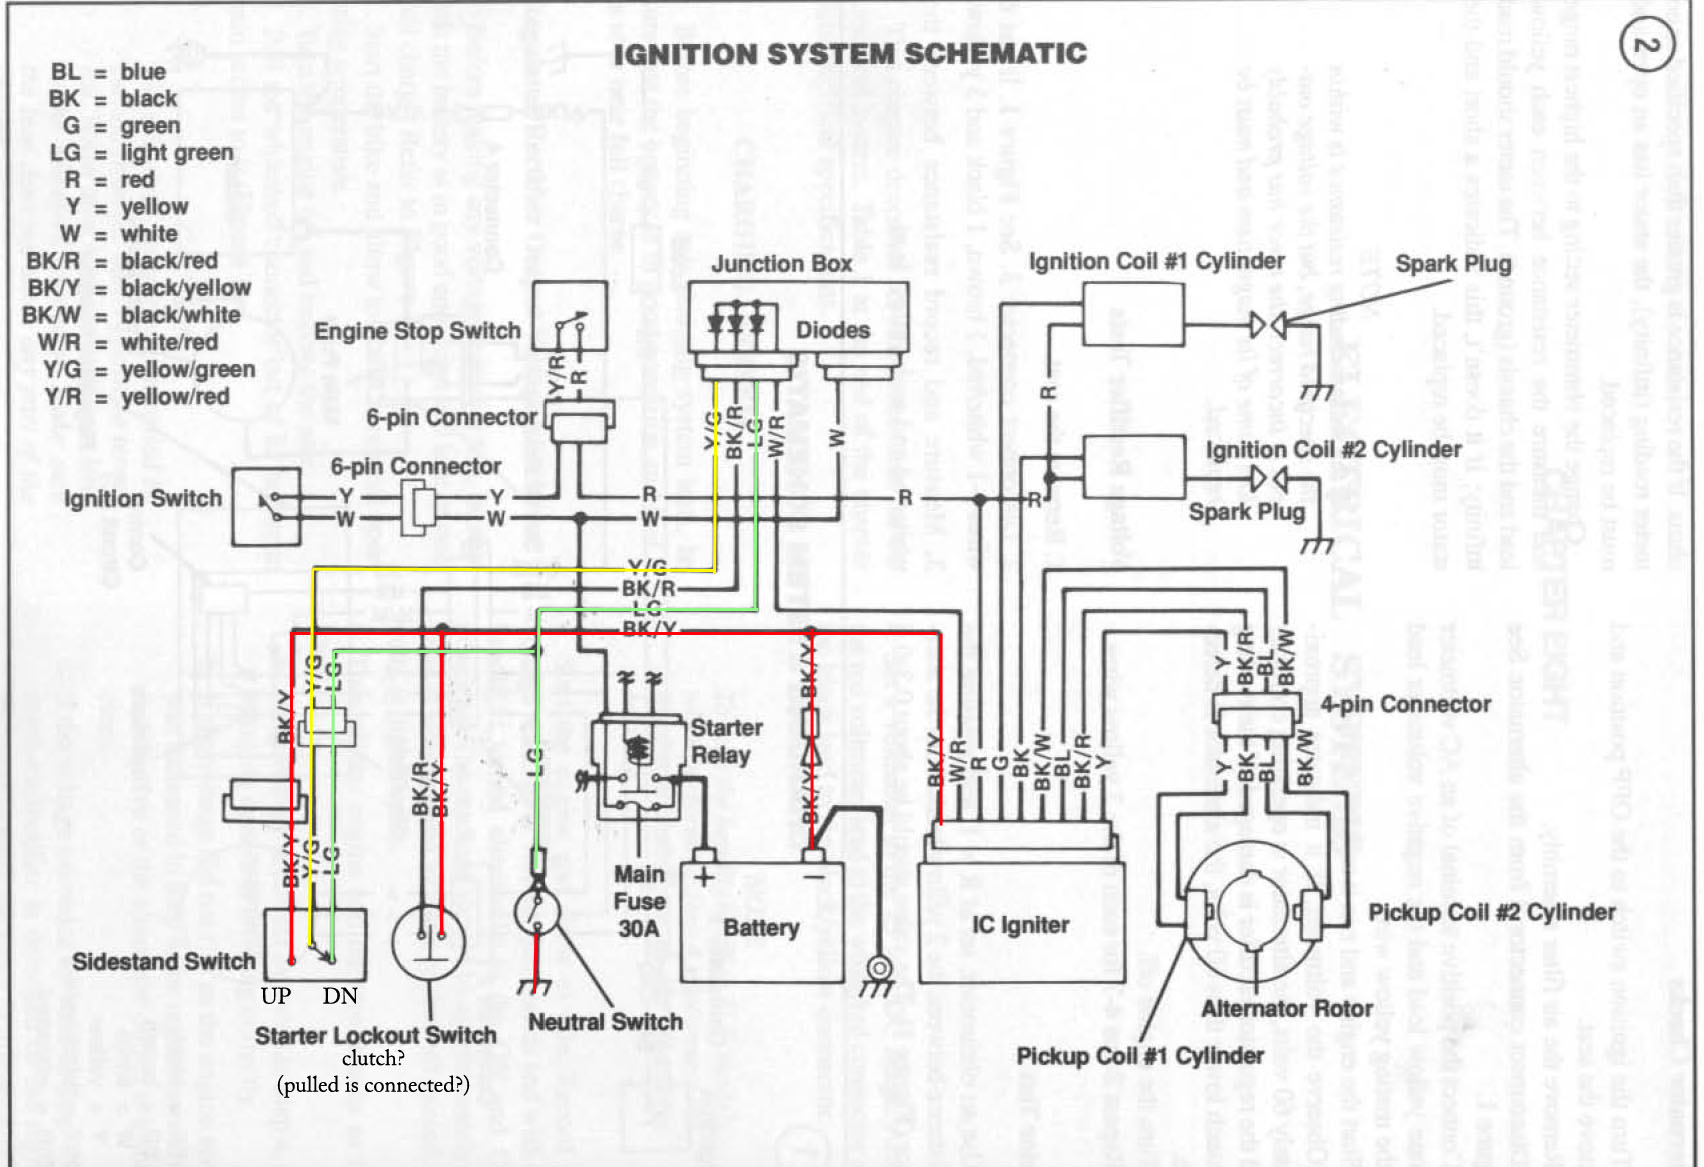 Kawasaki_EX_500_ignition kawasaki klf 300 wiring diagram kawasaki mule engine diagram ninja 250r wiring diagram at mifinder.co